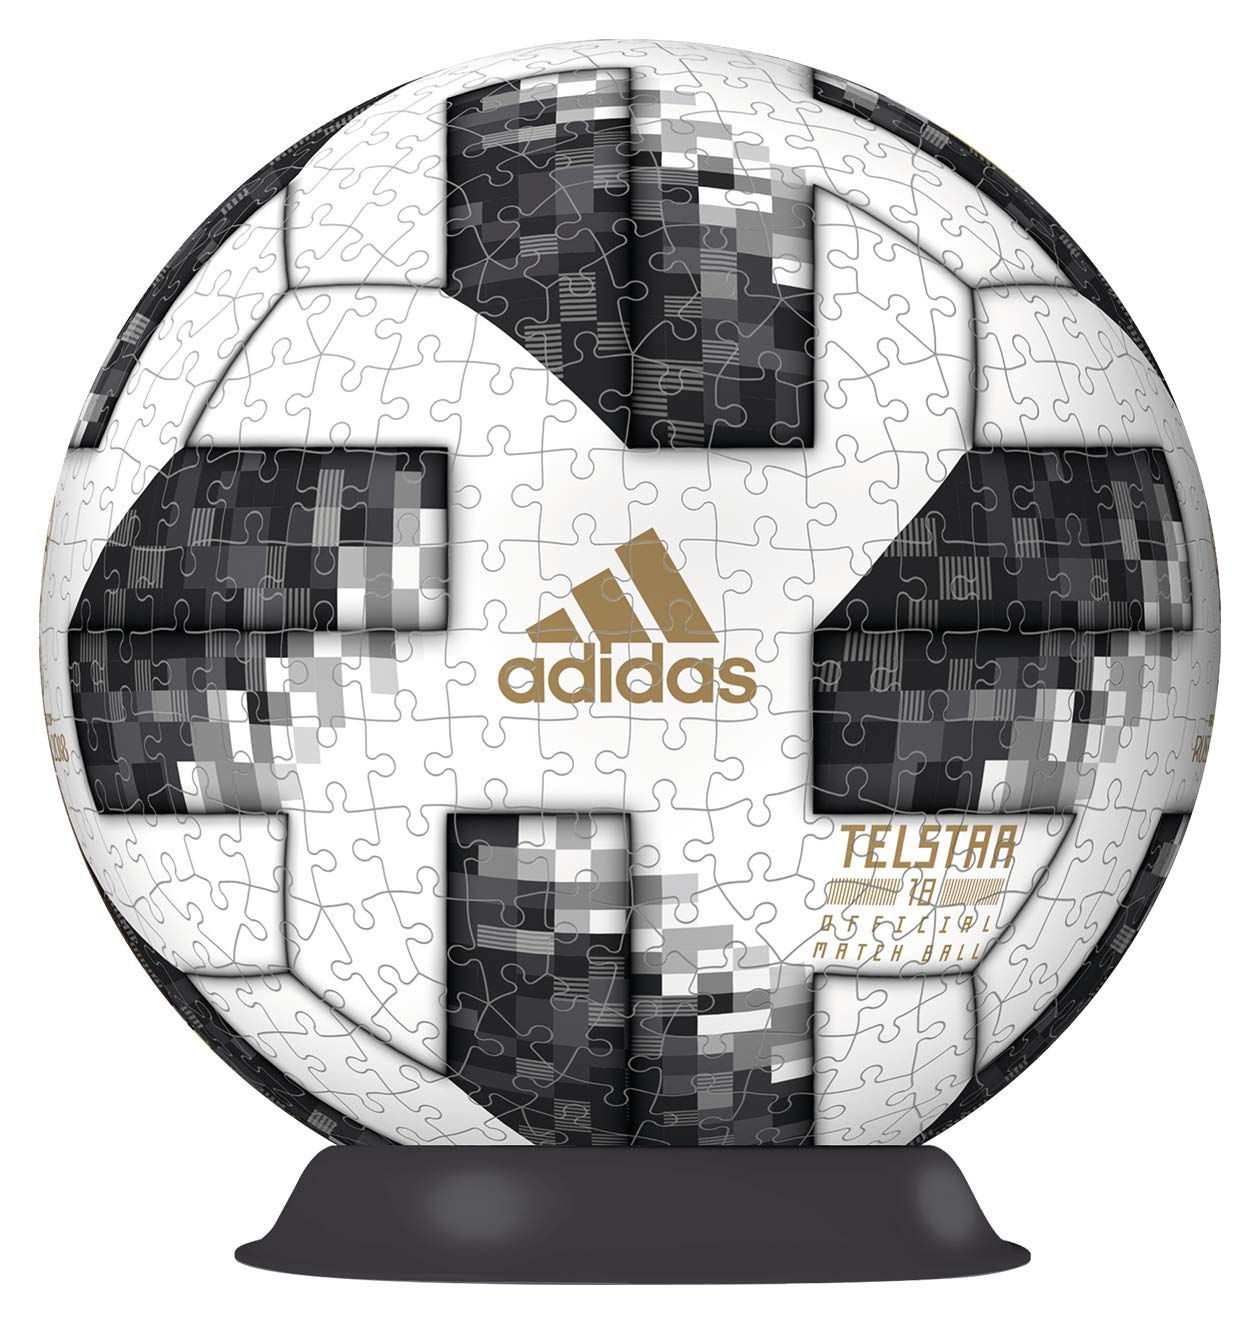 Adidas 2018 World Cup PuzzleBall 540 Piece 3D Puzzle Ravensburger 12437